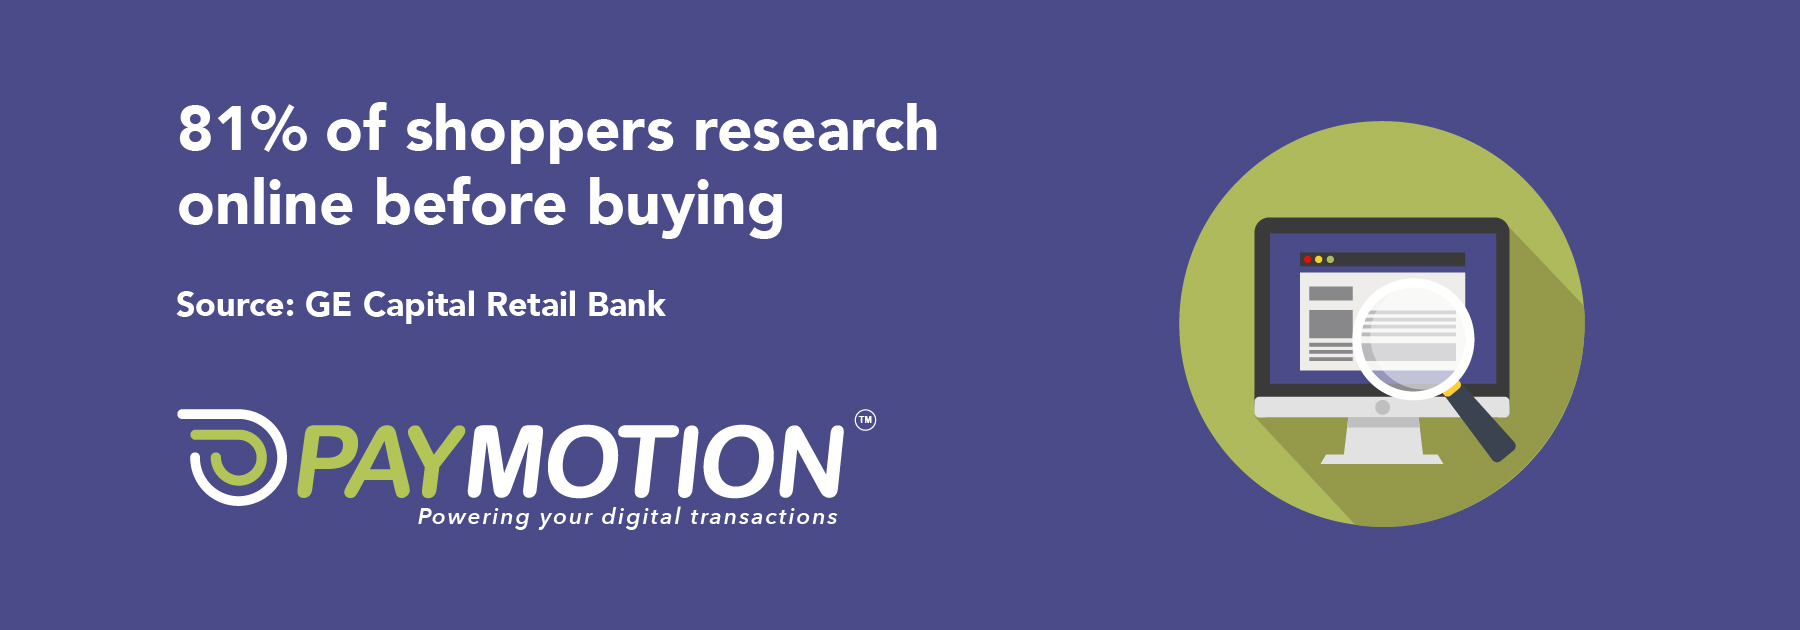 PayMotion, 81% of shoppers research online before buying image